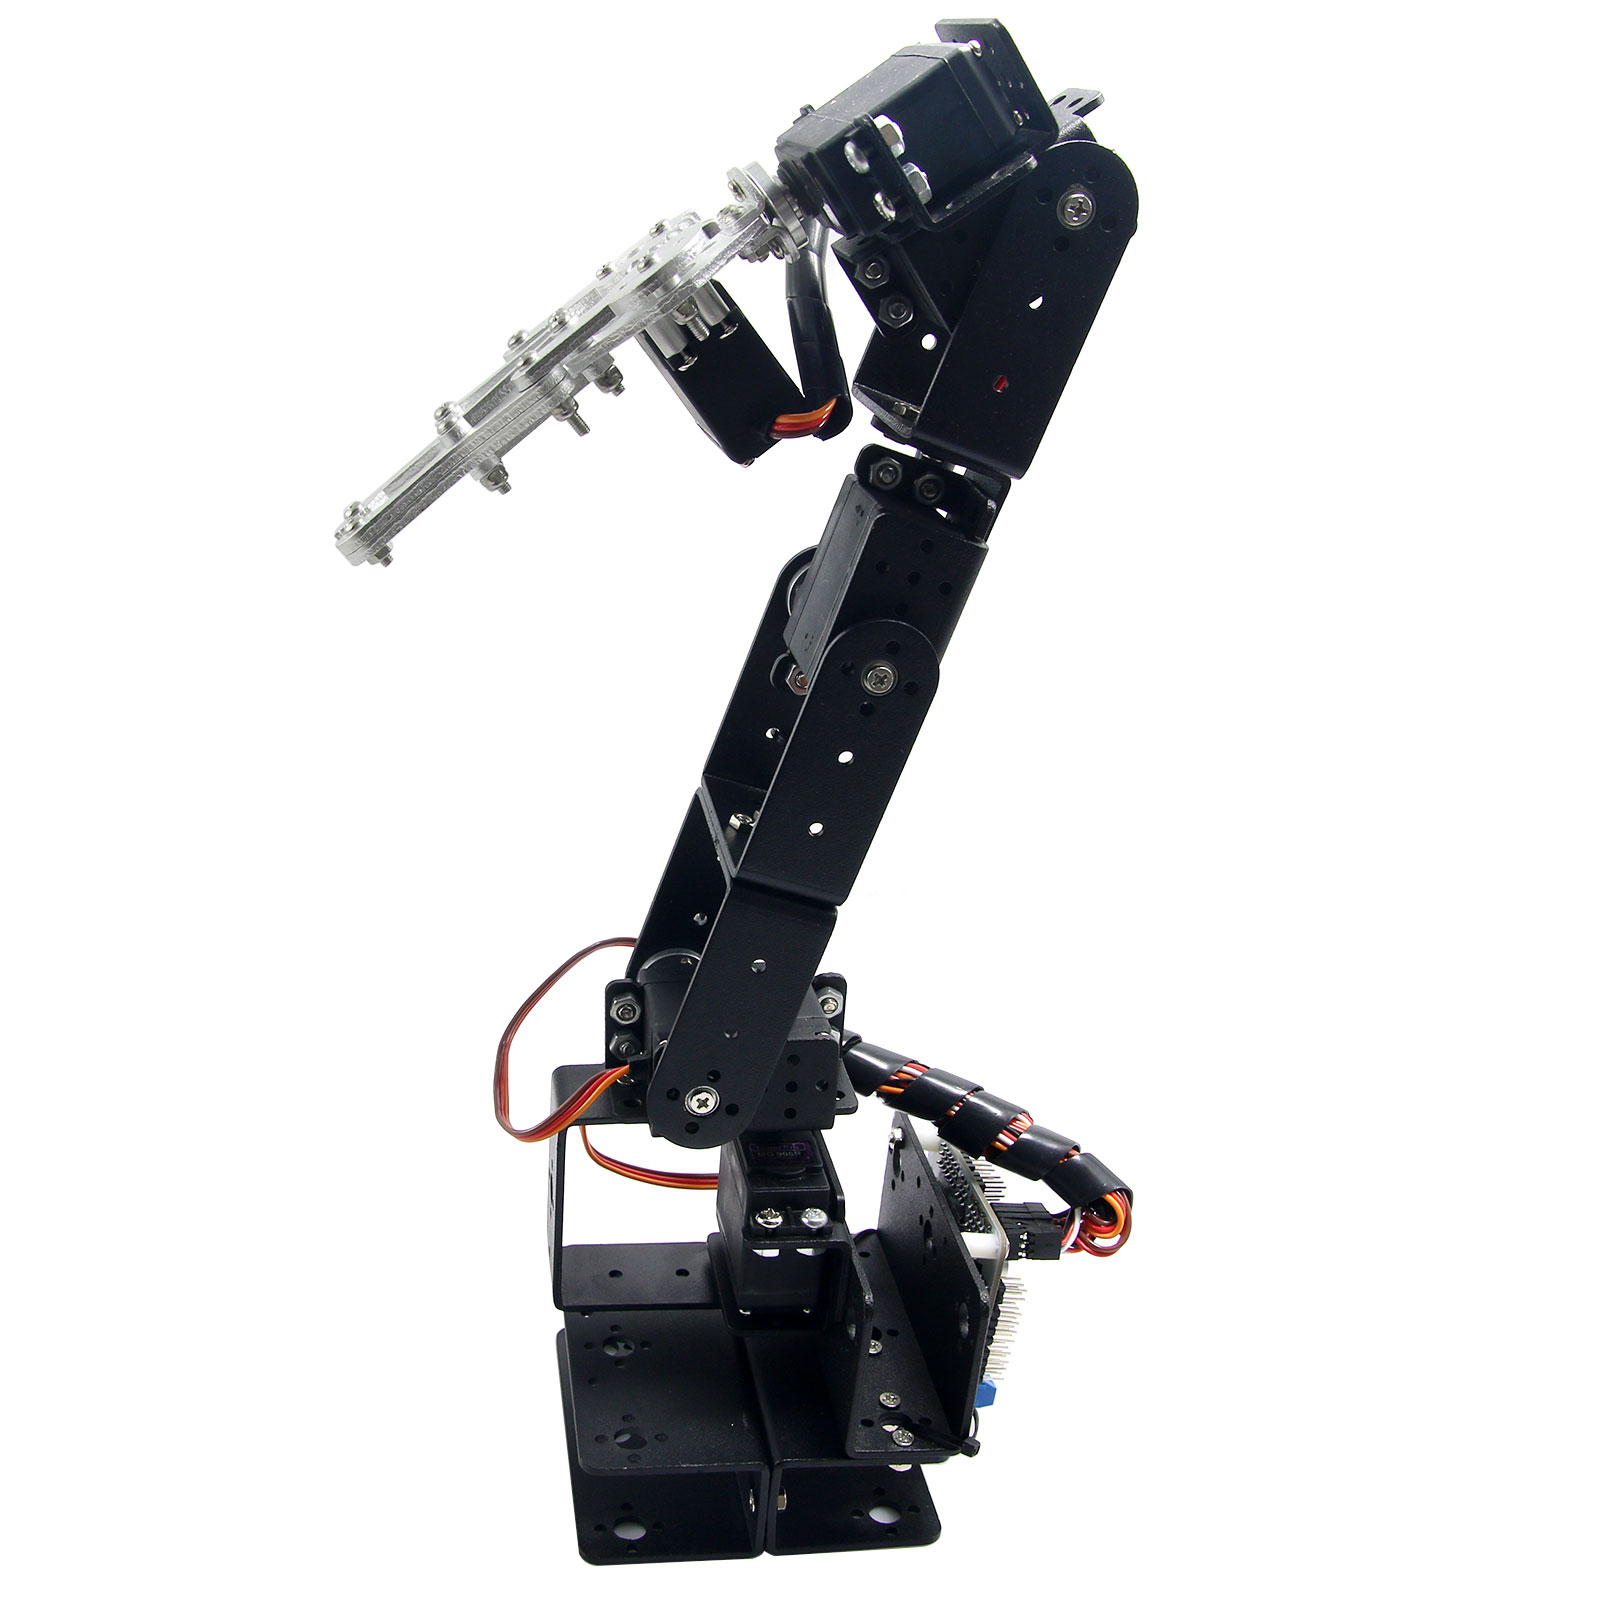 Robot 6 DOF Aluminium Clamp Claw Mount kit Mechanical Robotic Arm with Metal Servo Horn for Arduino 3 dof metal robotic claw gripper robot mechanical claw compatible with ld 1501mg digital servo ldx 335 single axis digital servo